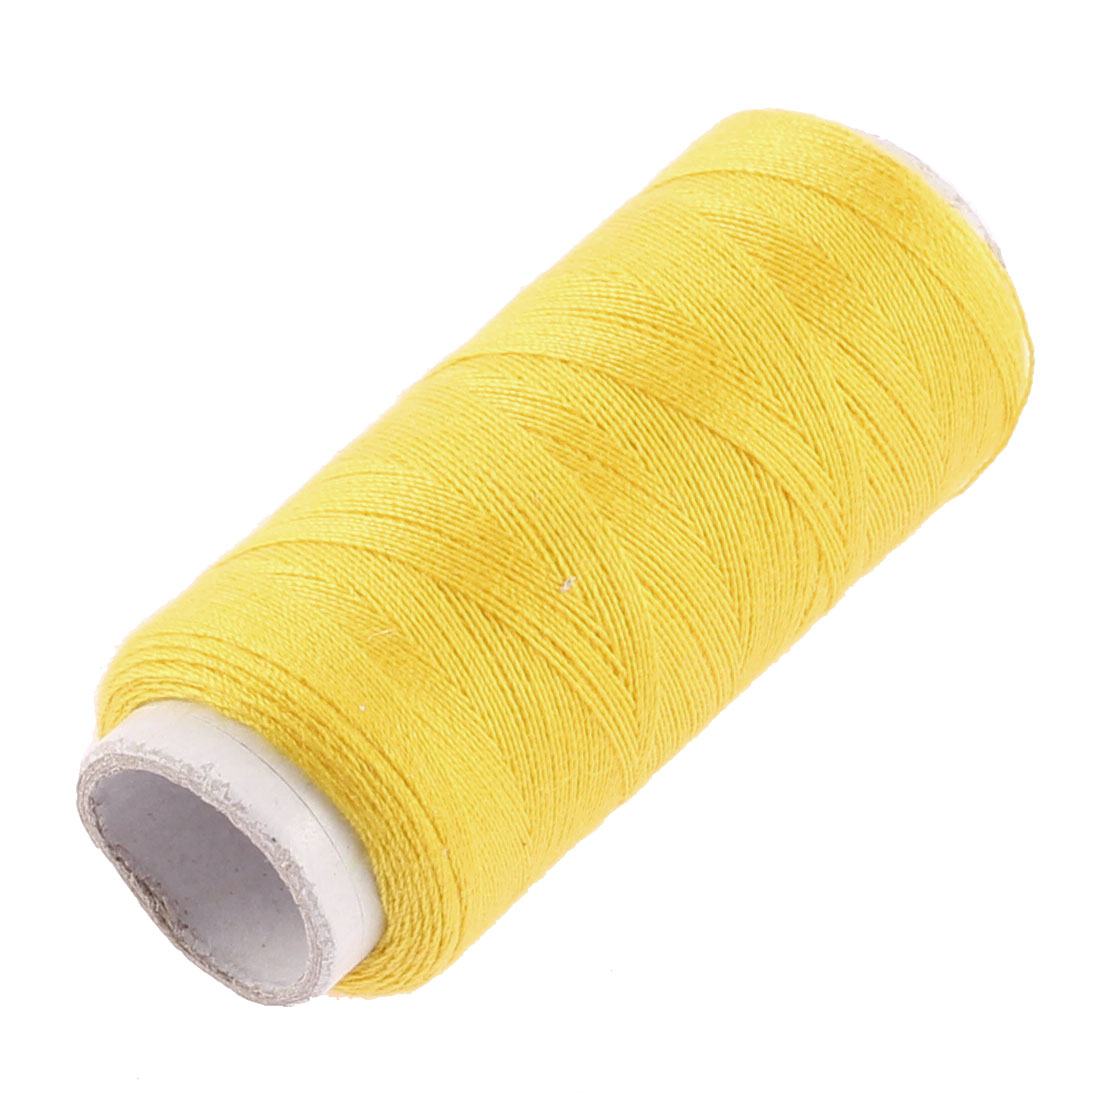 Embroidering Stitching Sewing Thread String Spool Yellow